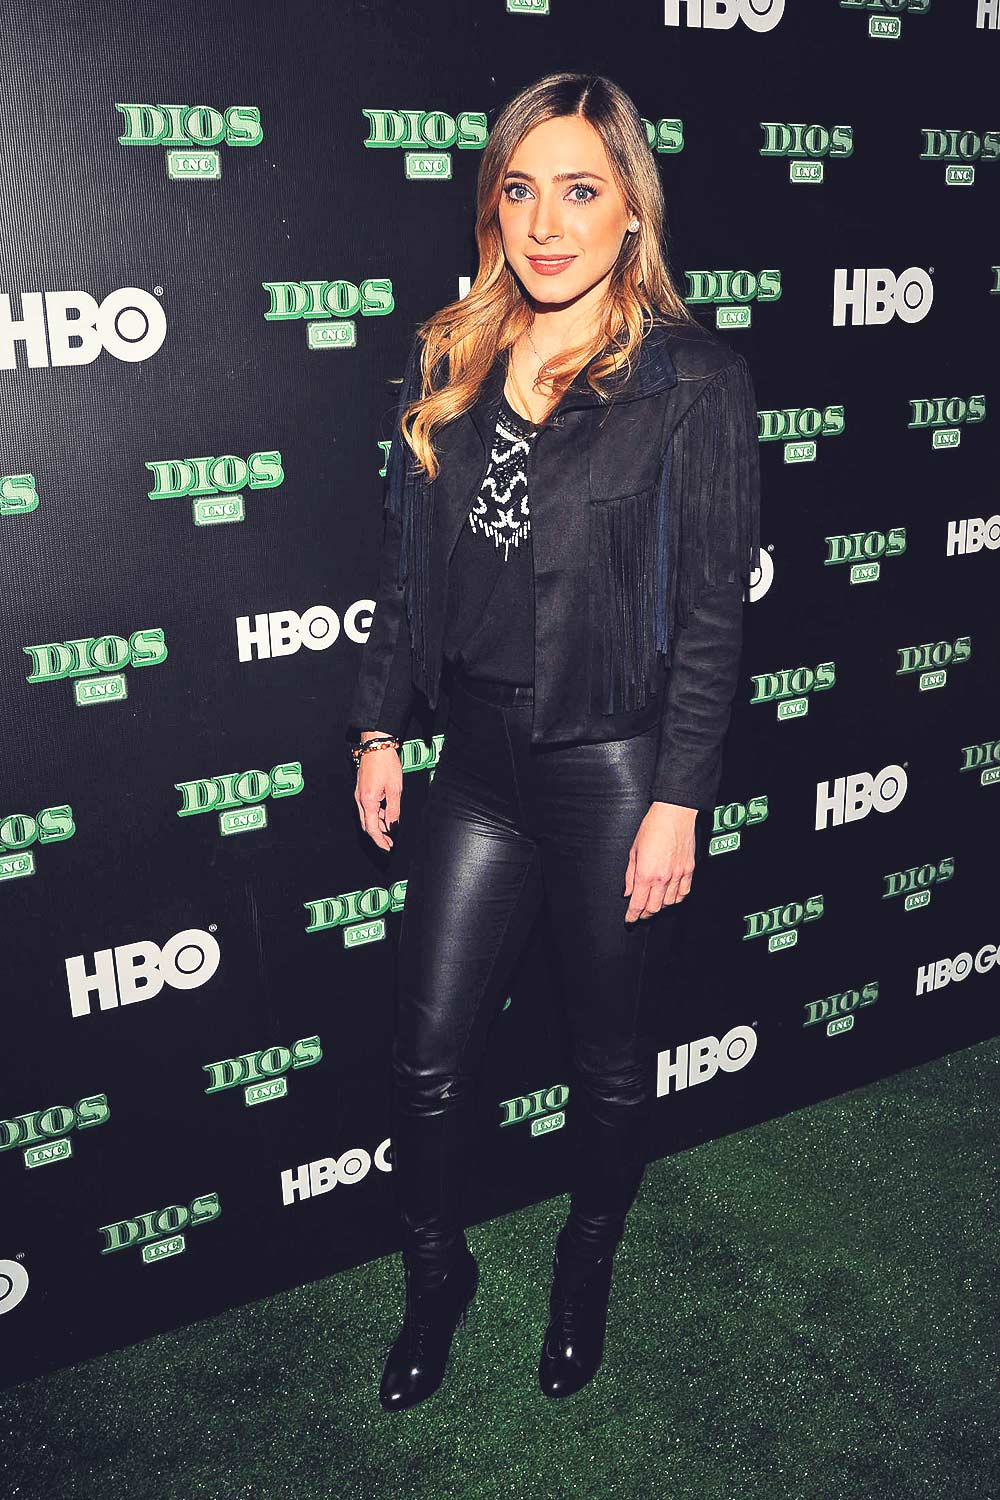 Edna Monroy poses during the red carpet of the new HBO's tv series 'Dios Inc'